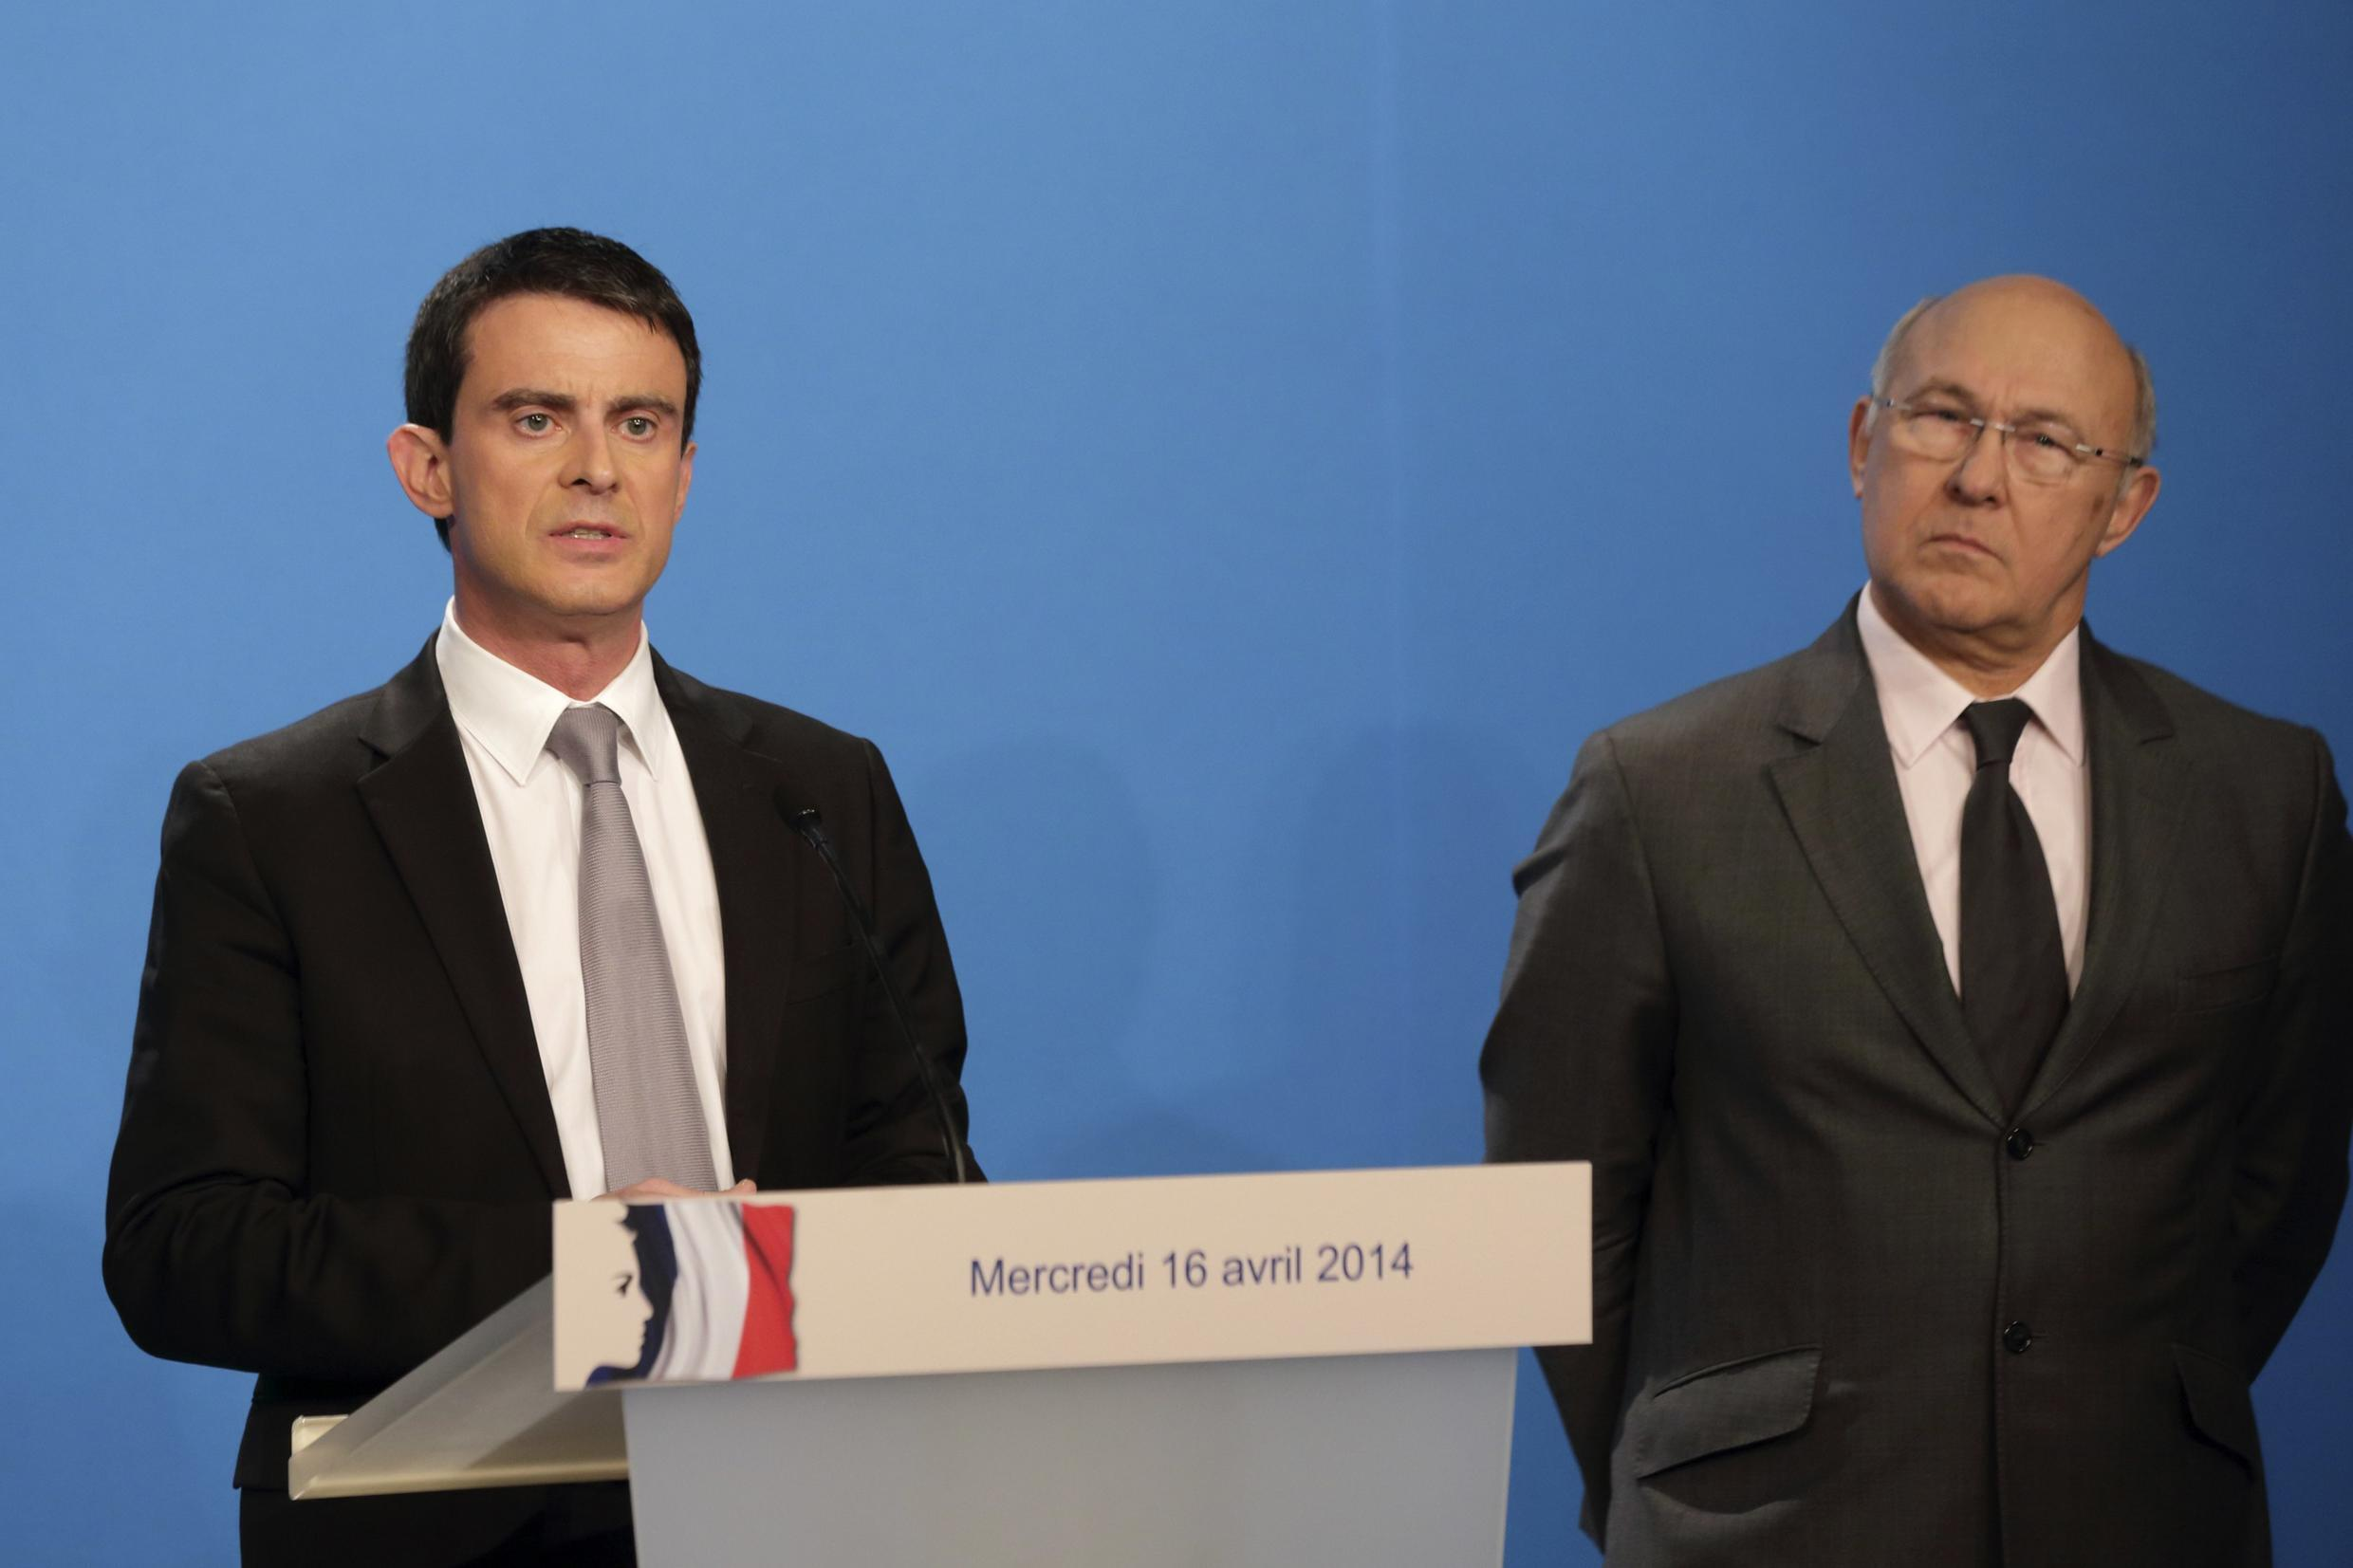 Prime Minister Manuel Valls (L) and Finance Minister MIchel Sapin announce their plans to tackle France's economic problems